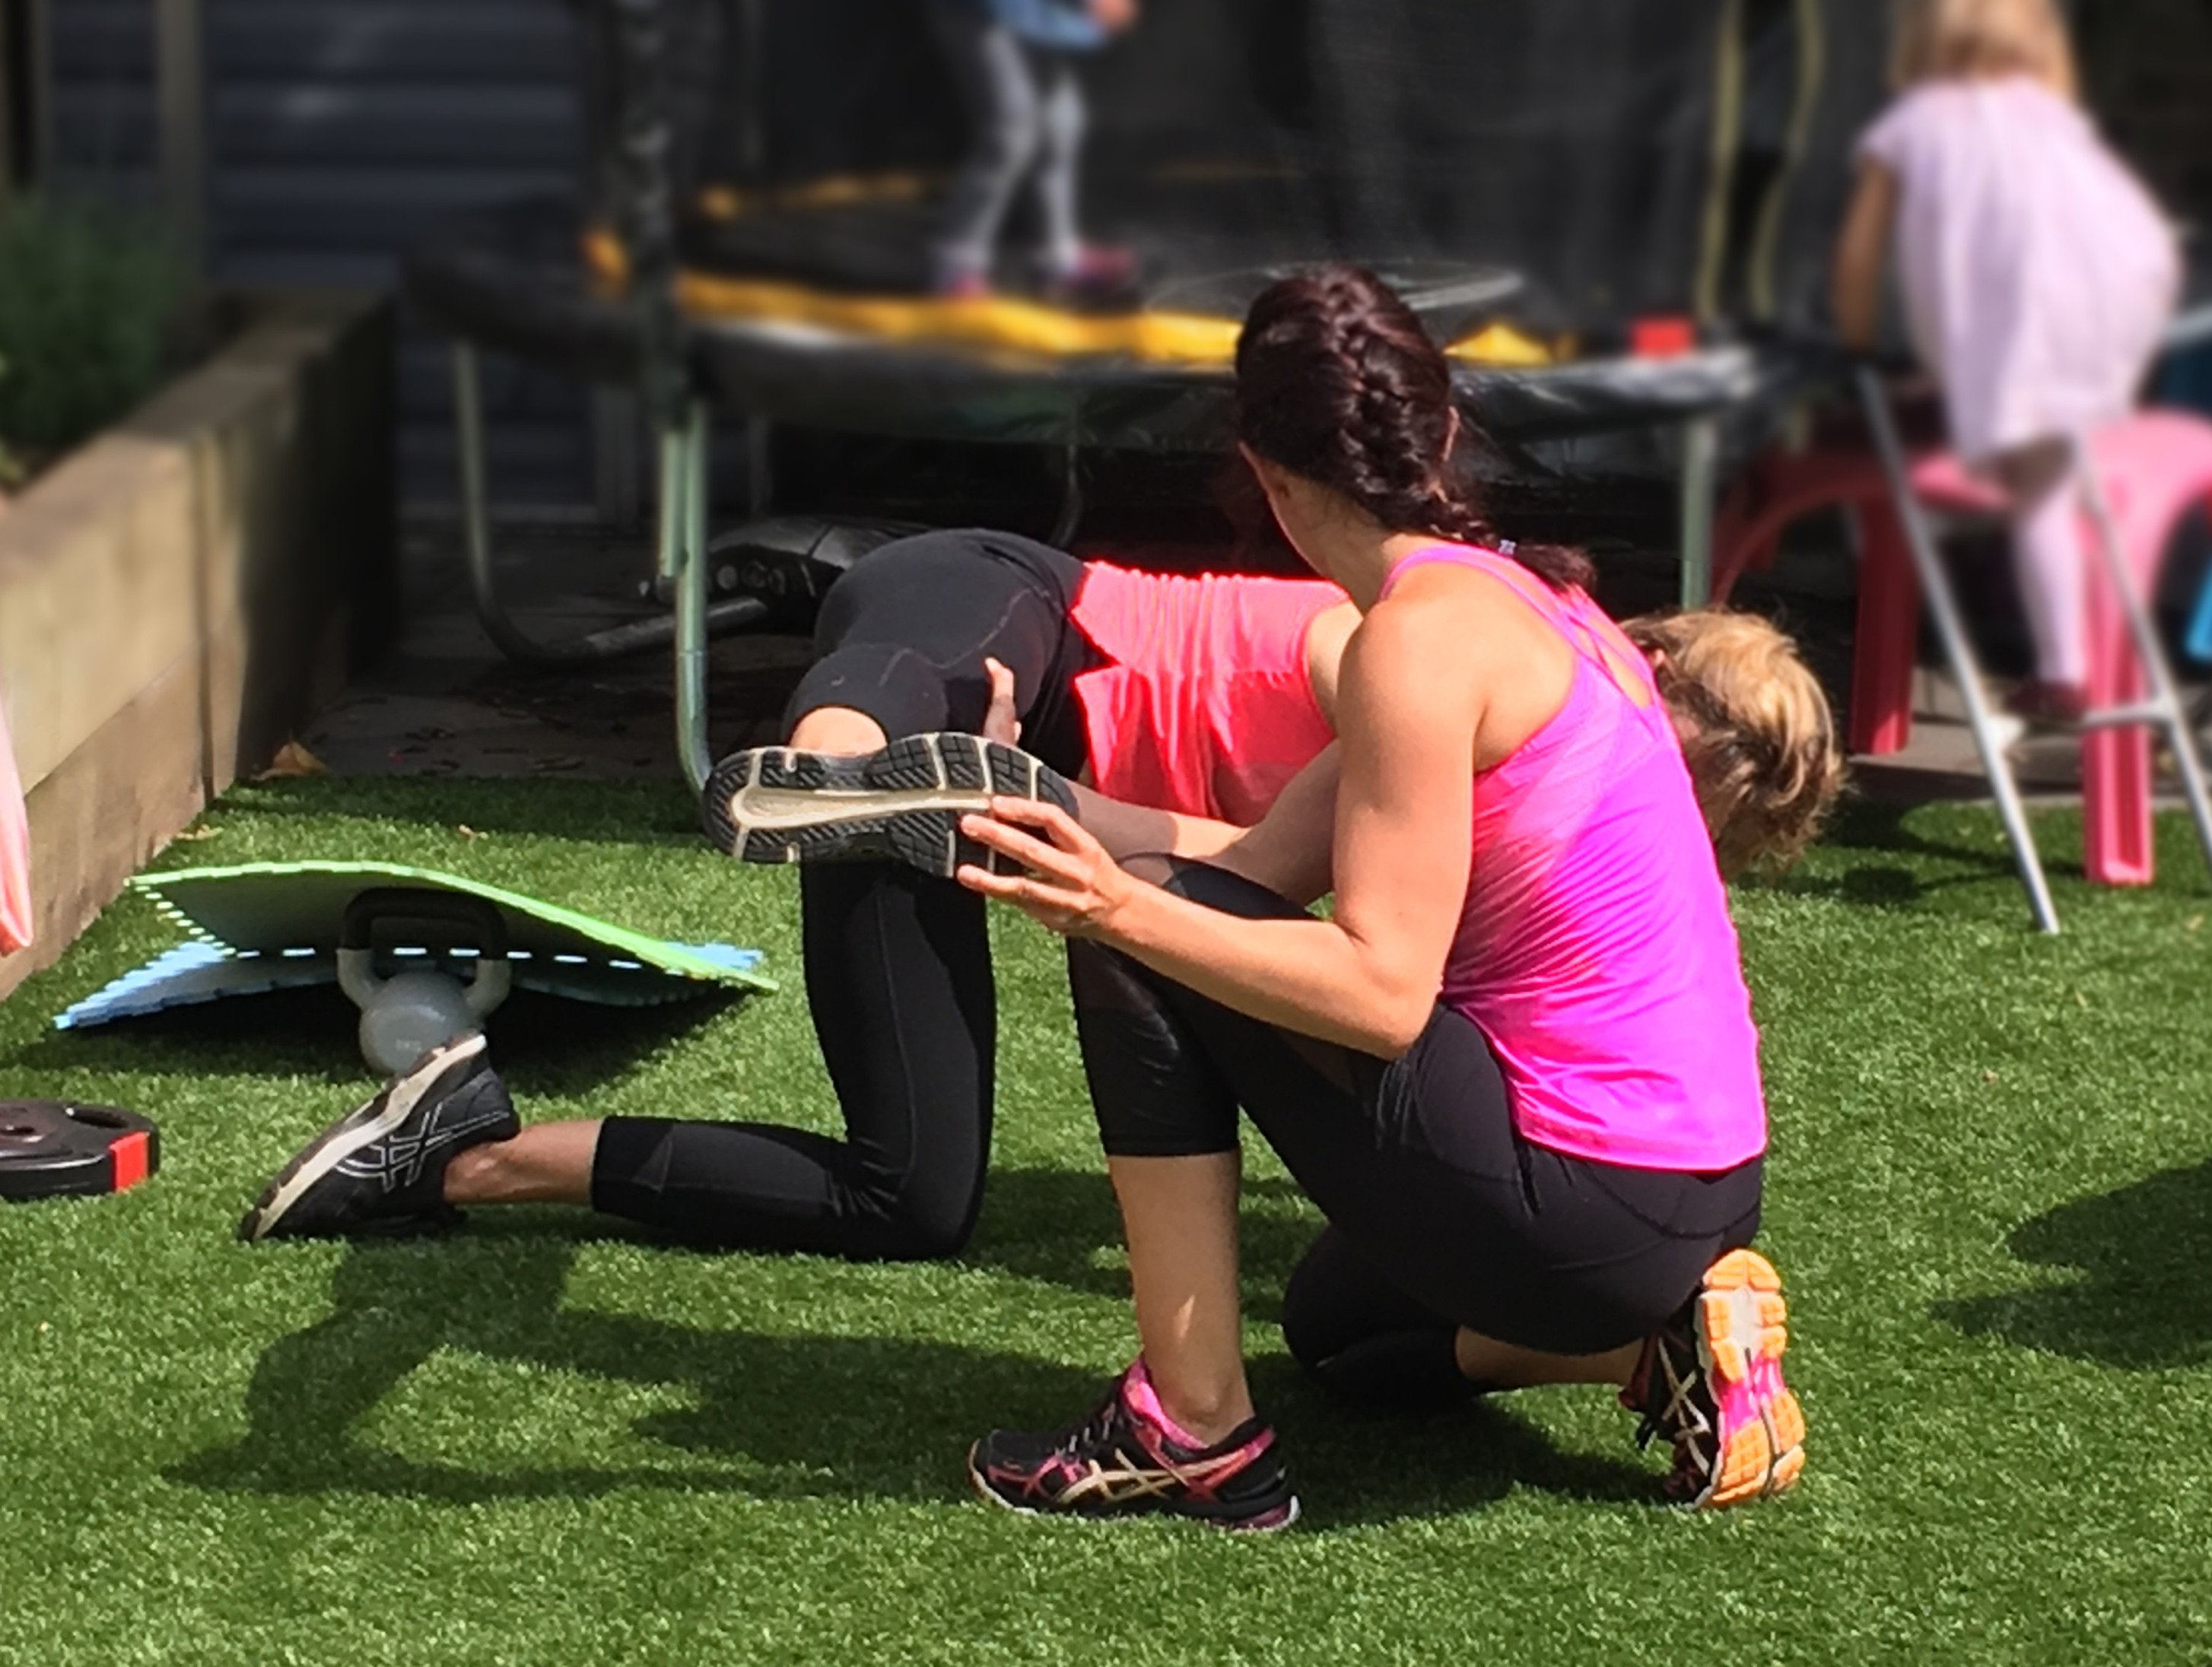 In-person 1:1 Personal Training